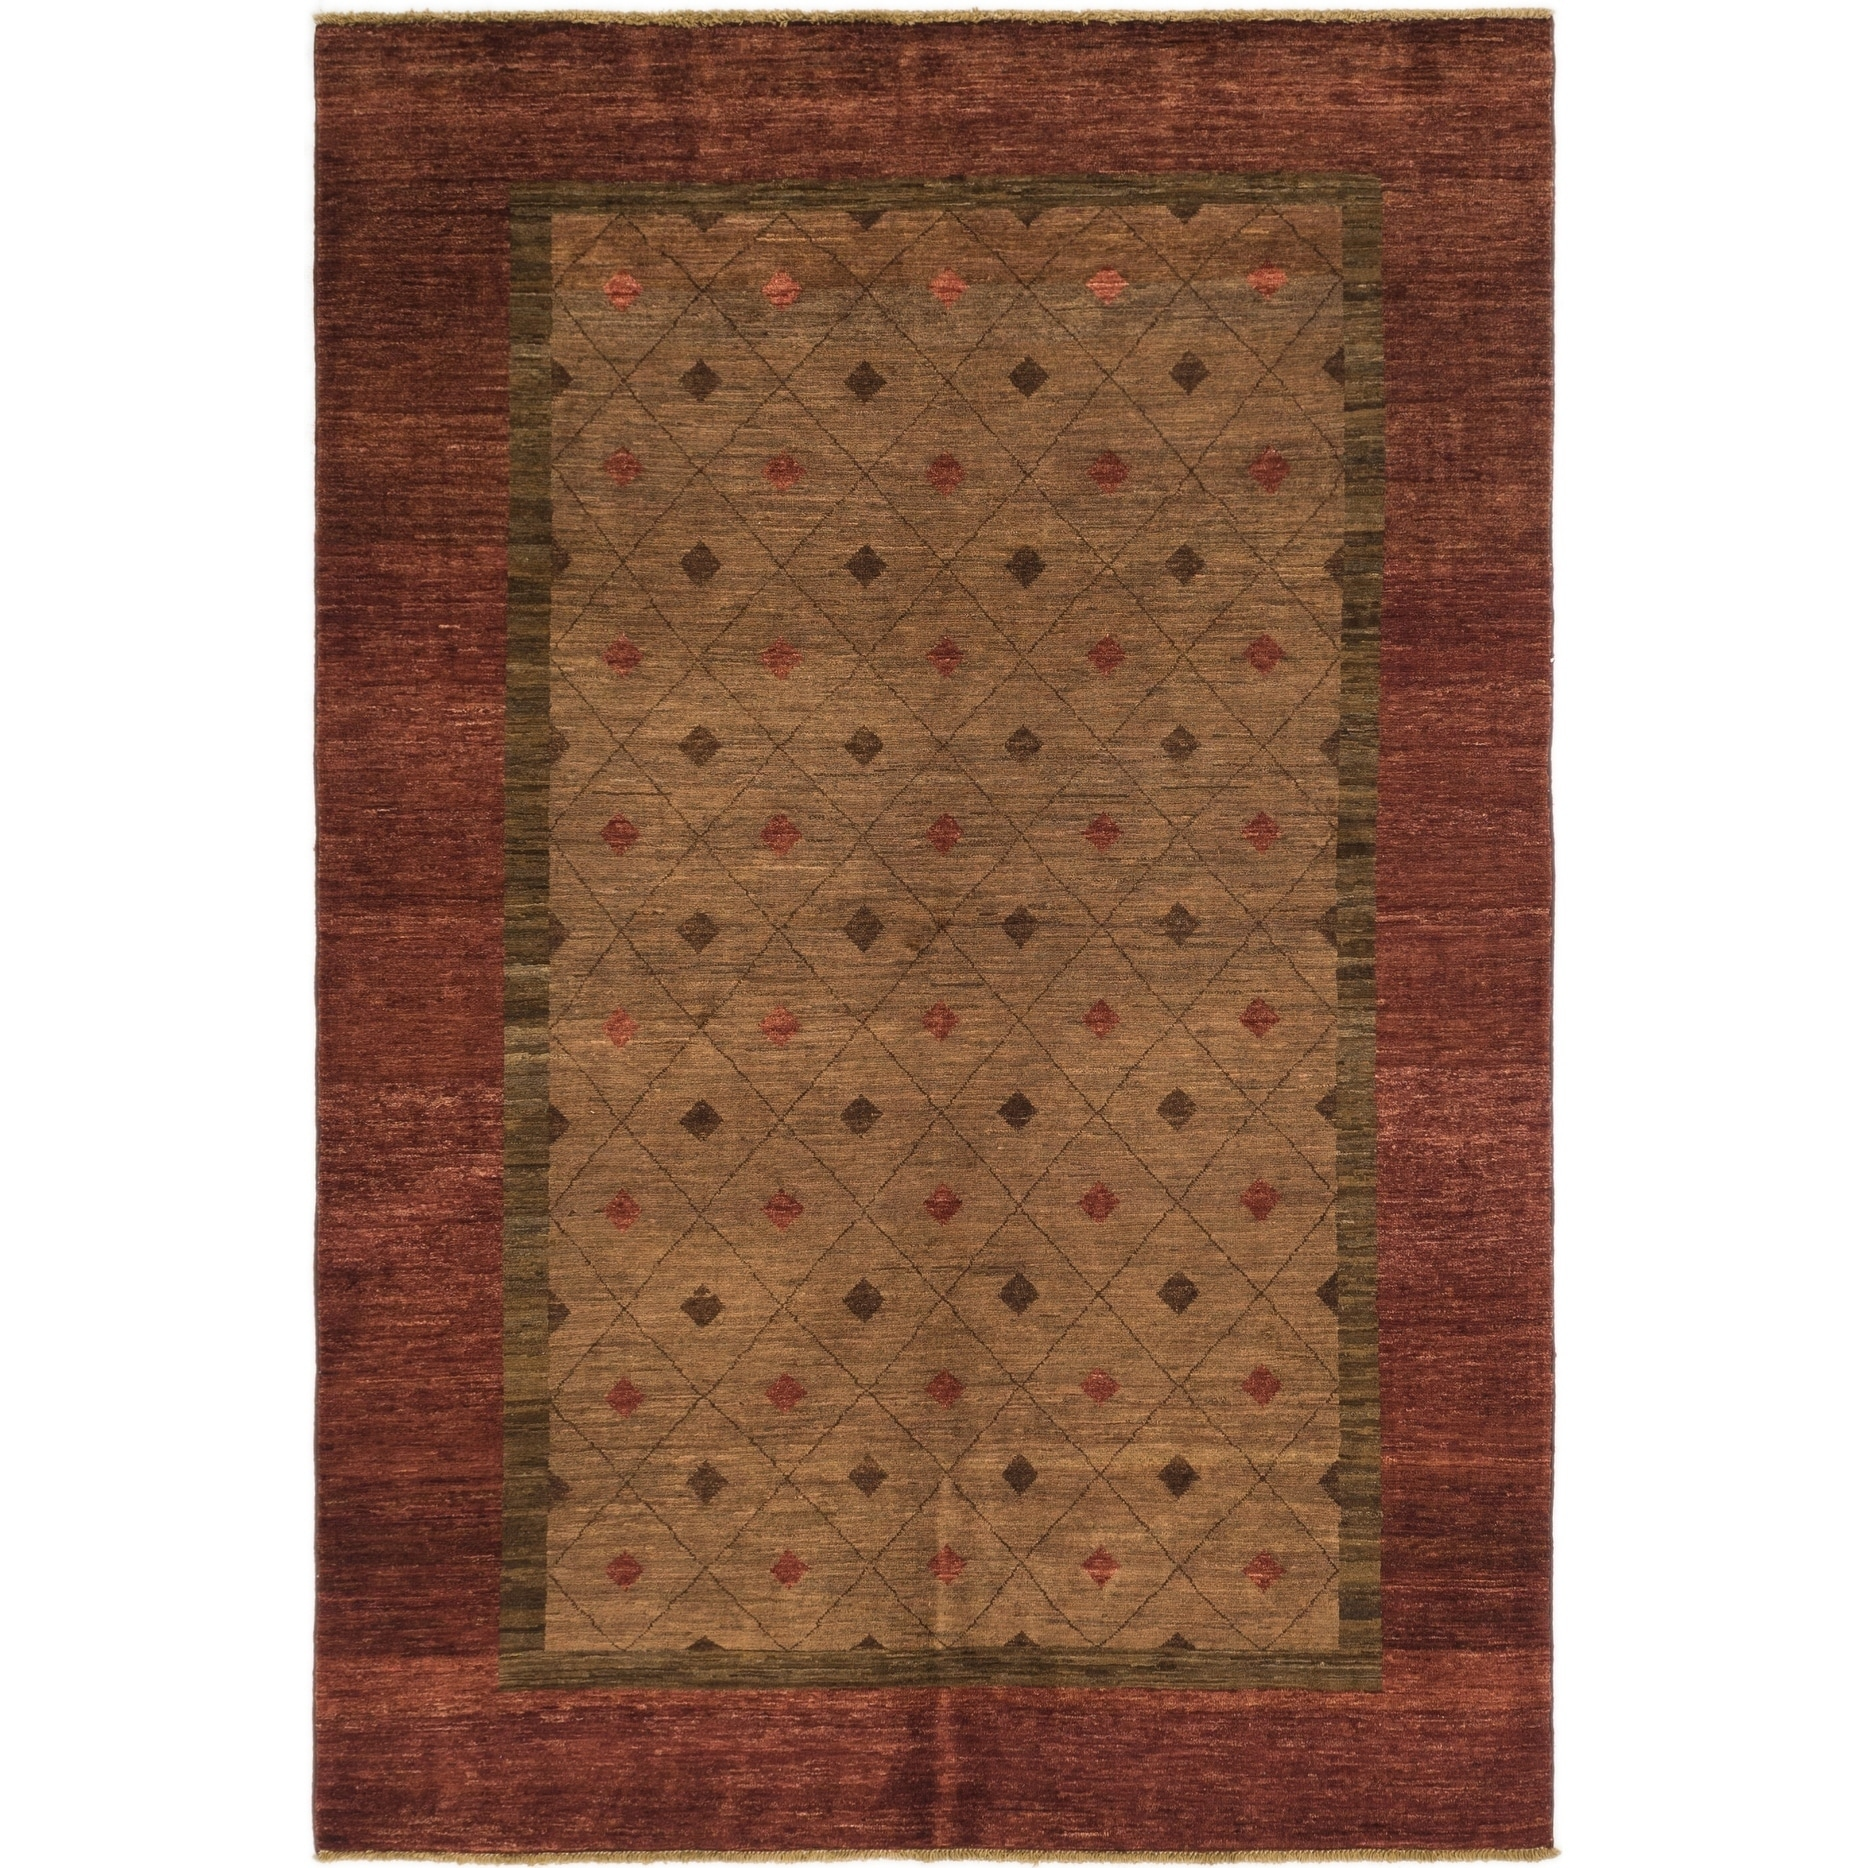 Hand Knotted Kashkuli Gabbeh Wool Area Rug - 5 6 x 8 2 (Brown - 5 6 x 8 2)